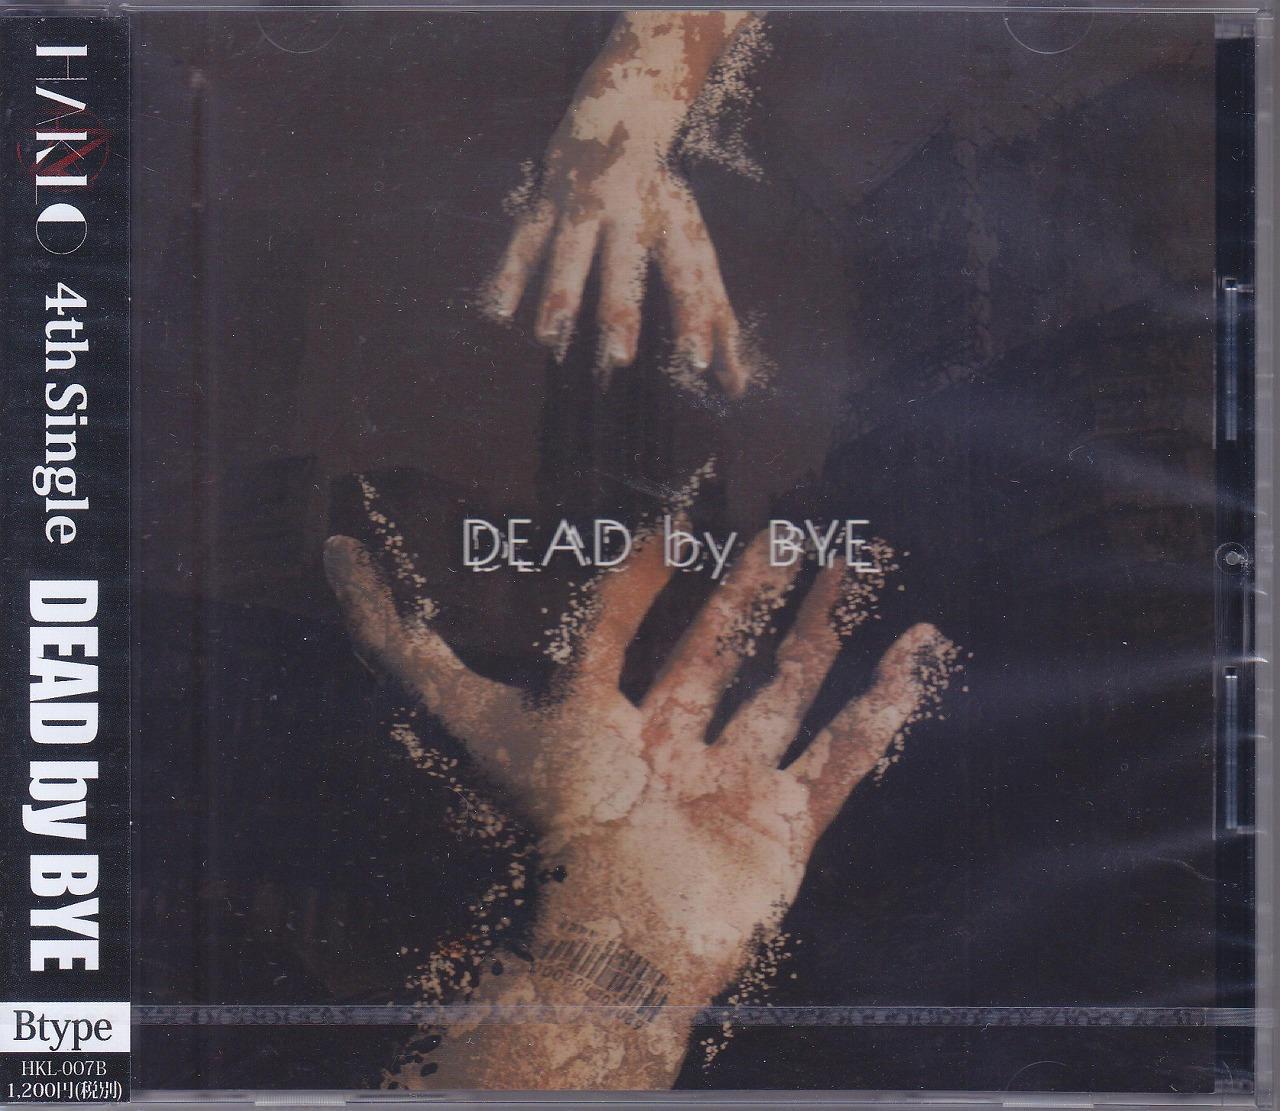 ハクロ の CD 【Btype】DEAD by BYE